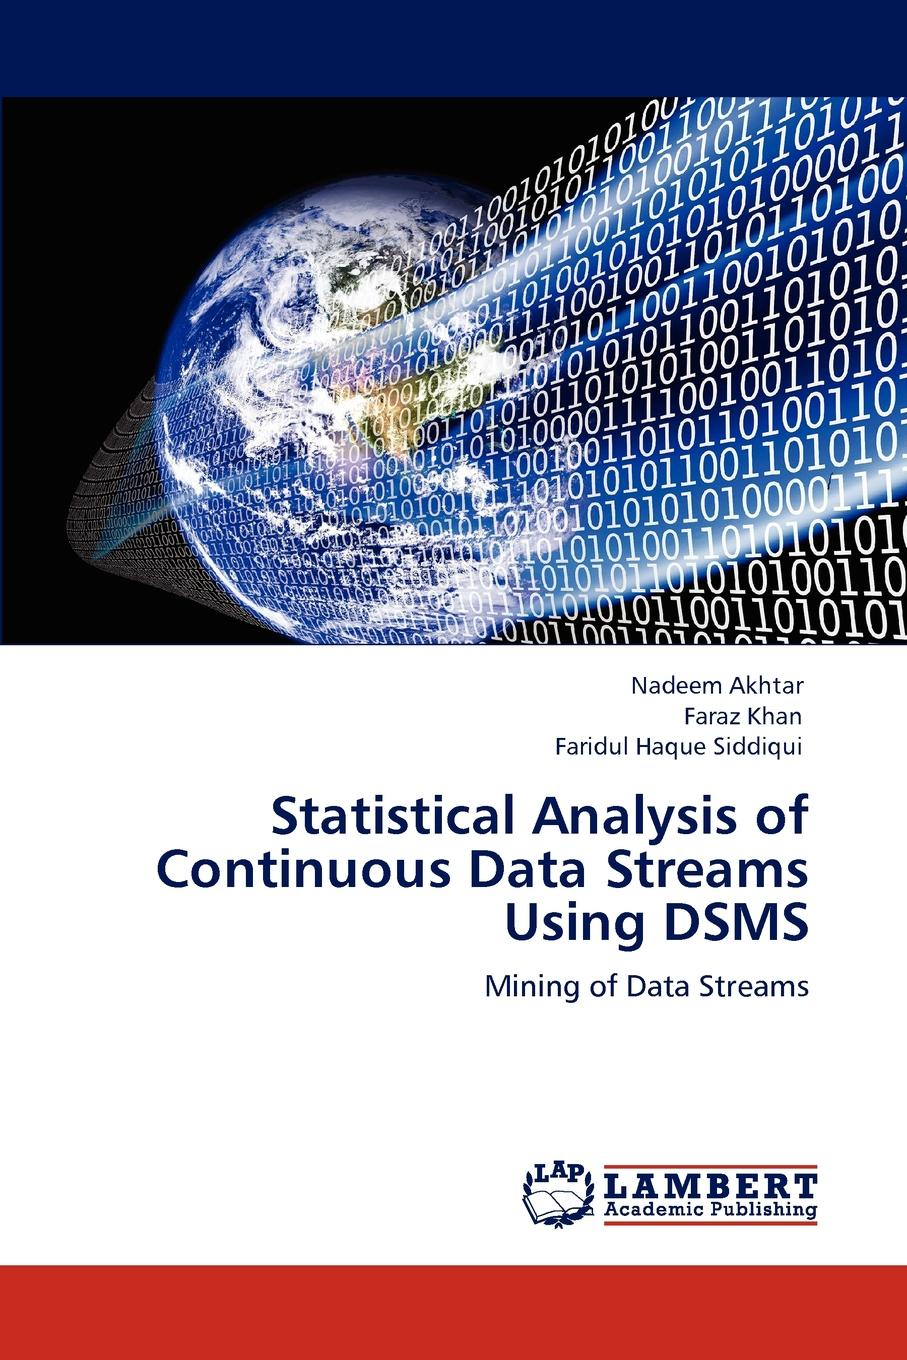 Nadeem Akhtar, Faraz Khan, Faridul Haque Siddiqui Statistical Analysis of Continuous Data Streams Using DSMS scientific study of road traffic flow